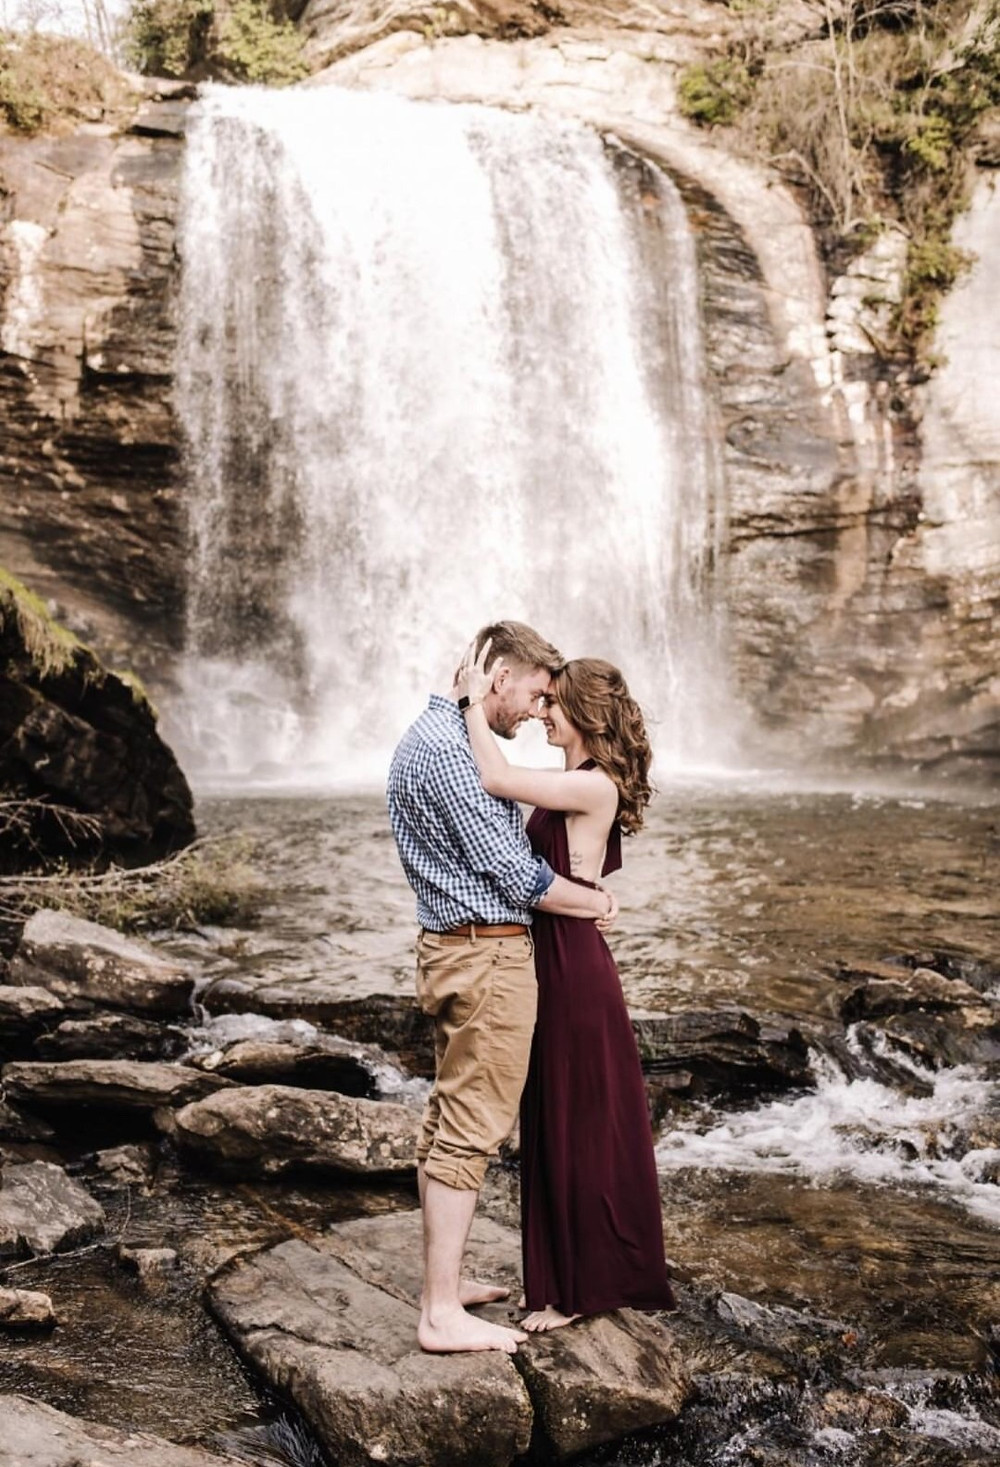 professional image by Rebekah Torres Photography in front of a waterfall in western North Carolina